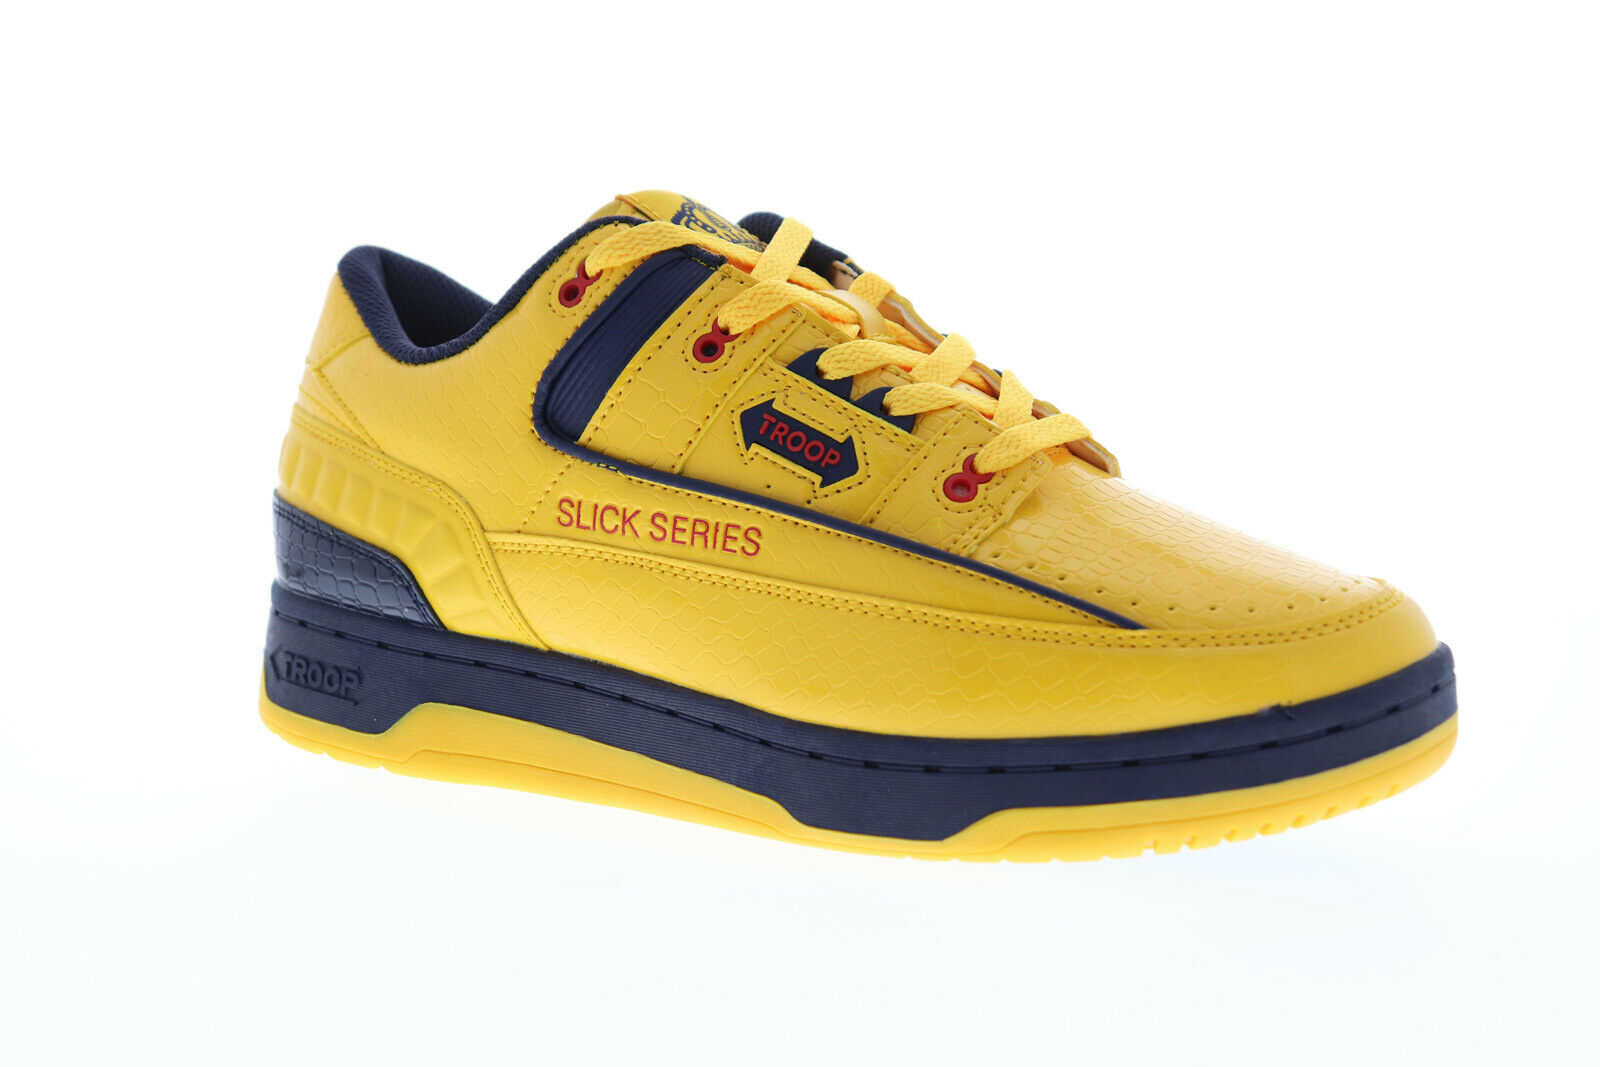 World of Troop Slick Series Homme Jaune Synthétique Low Top baskets Chaussures